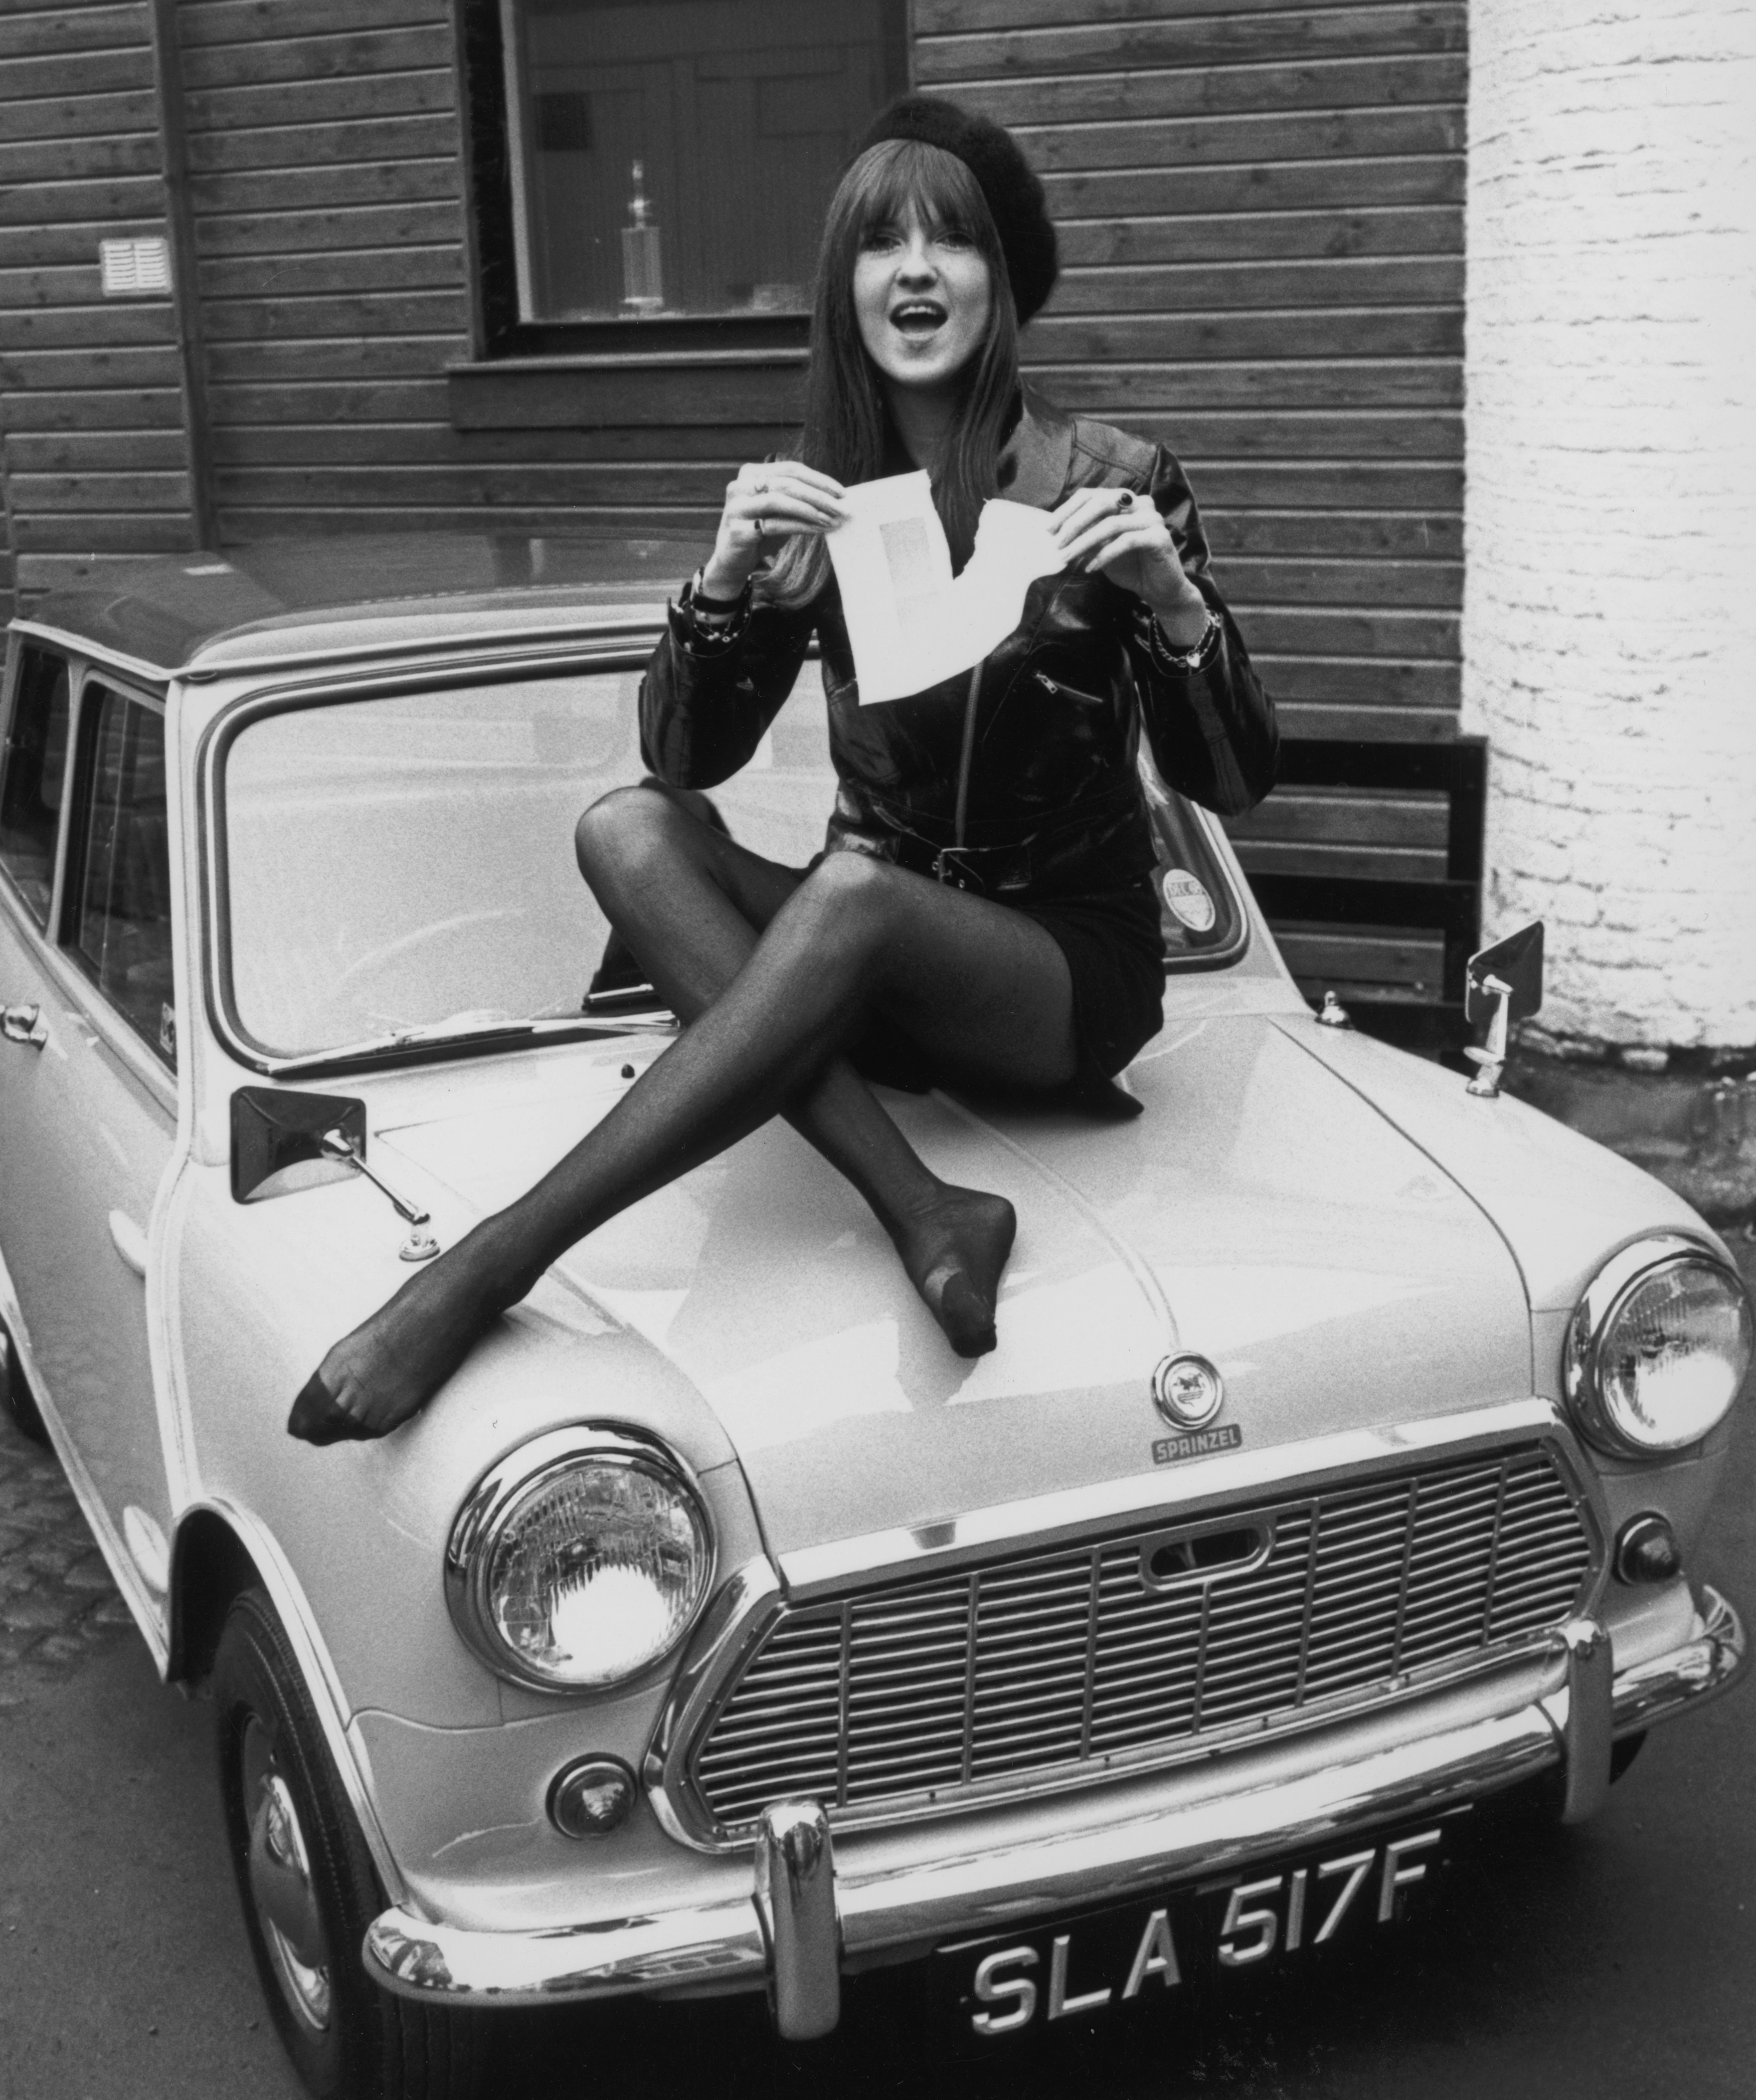 Cathy McGowan, presenter of the TV pop programme 'Ready Steady Go', tears up her 'L' plate after passing her driving test at the first attempt, 19th January 1968. She is sitting on the bonnet of her new Mini deluxe automatic, purchased from John Sprinzel's garage in Lancaster Mews at a cost of ?672. (Photo by Bob Aylott/Keystone/Hulton Archive/Getty Images)